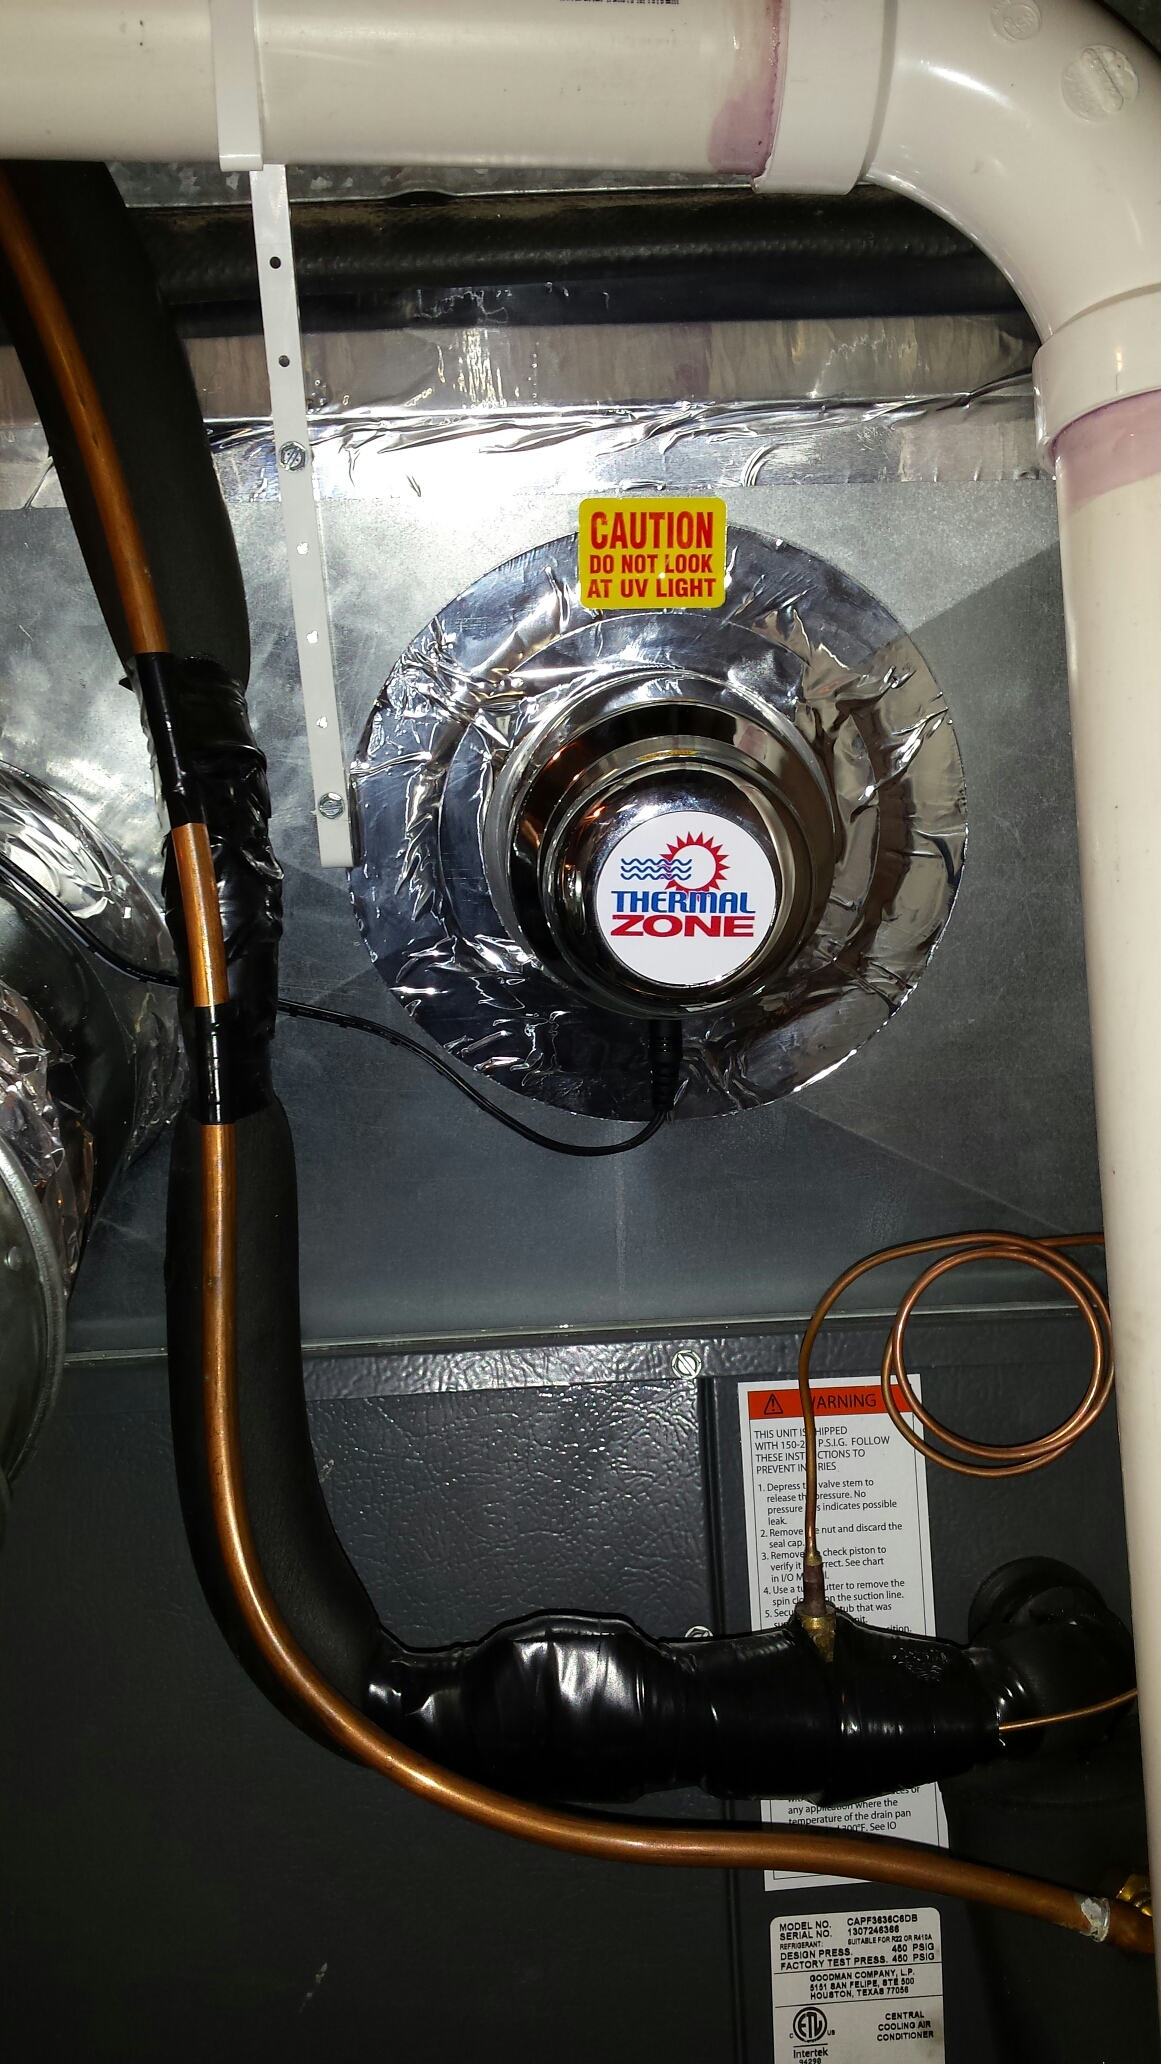 Furnace Air Conditioning Repair In Rockford Mn Have A Trane Xv90 With Ac Trying To Install Honeywell Uv Light Installation